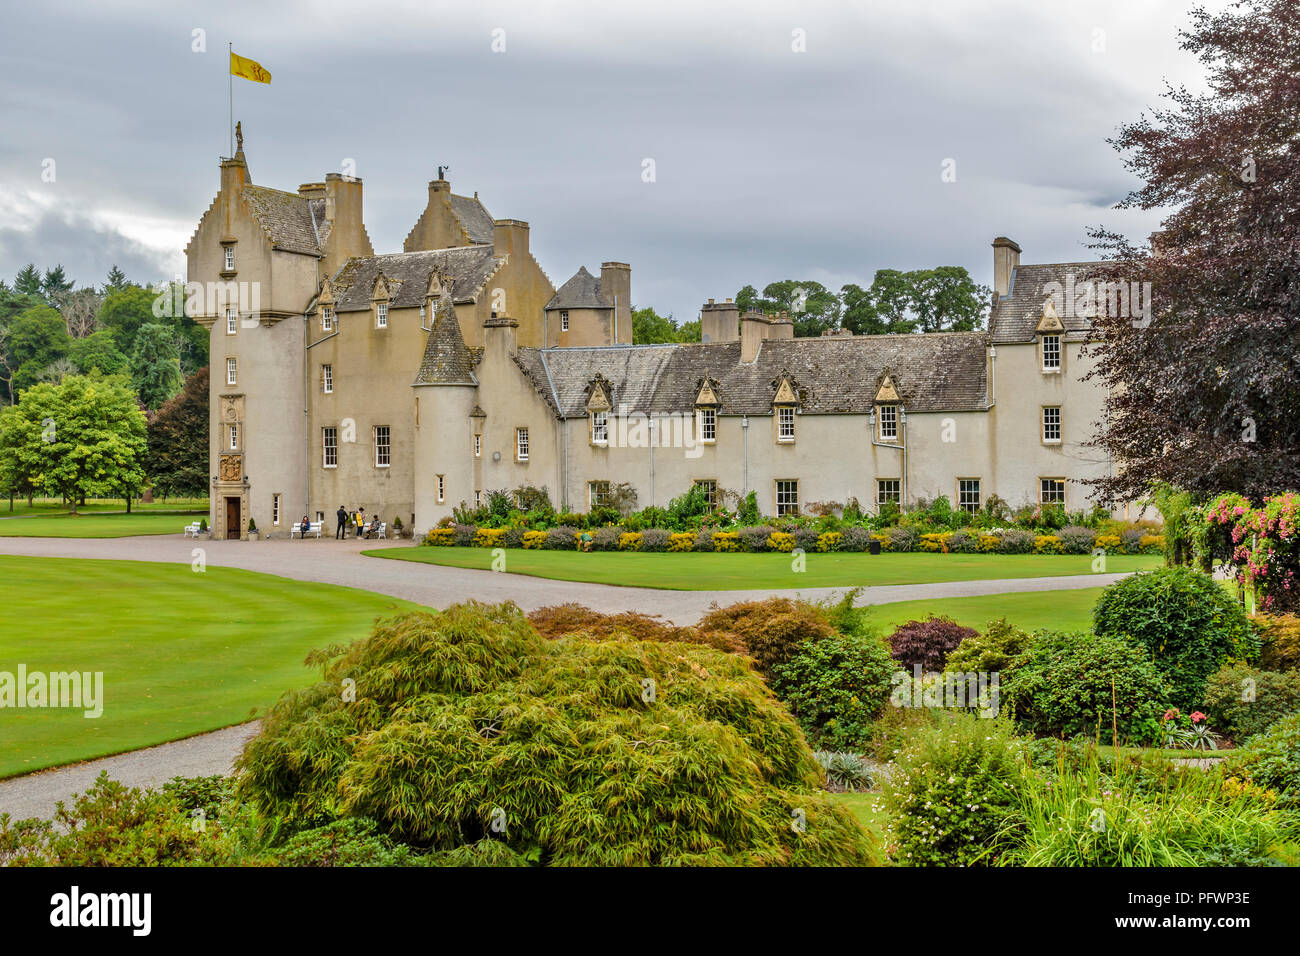 BALLINDALLOCH CASTLE SPEYSIDE SCOTLAND TOURISTS NEAR THE ENTRANCE OF THE CASTLE  AND A GARDENER TENDING THE FLOWER BEDS - Stock Image